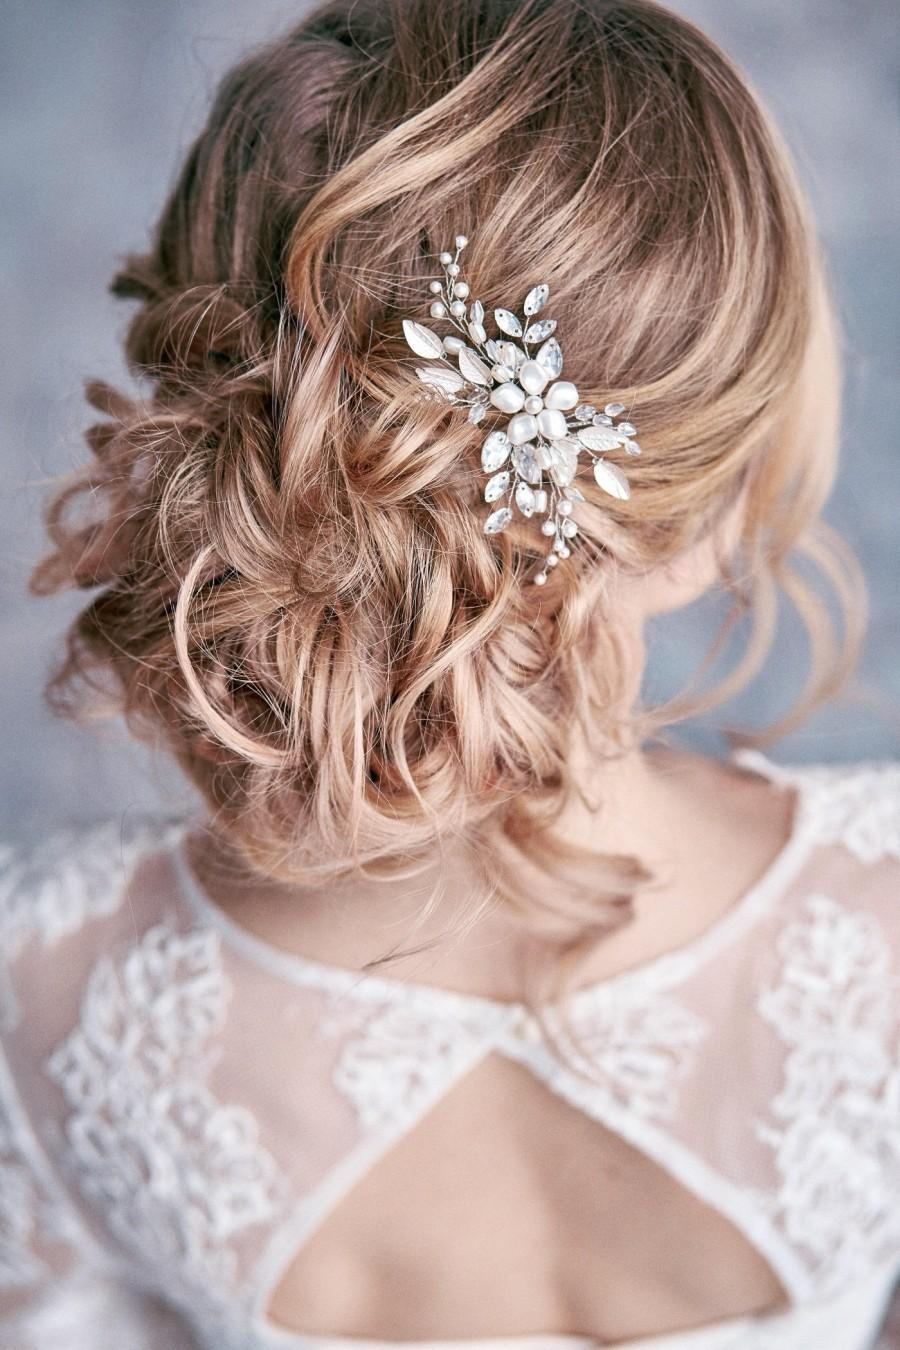 Mariage - Bridal hair pin Bridal hair piece Bridal headpiece Prom hair piece  Wedding headpiece Wedding hair piece Bridal hair accessories